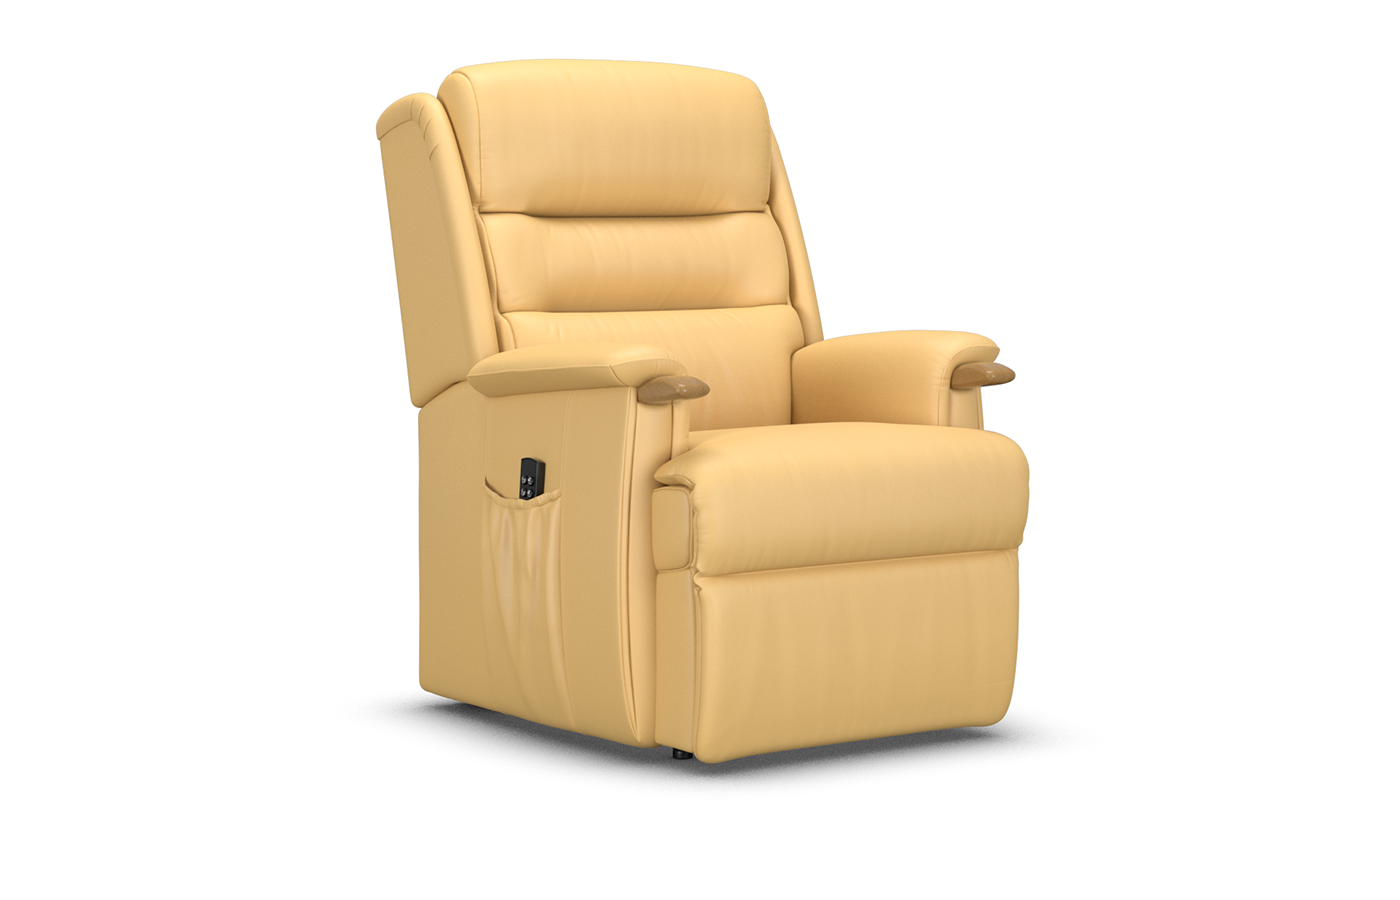 Ripley Armchair With Knuckles Sale